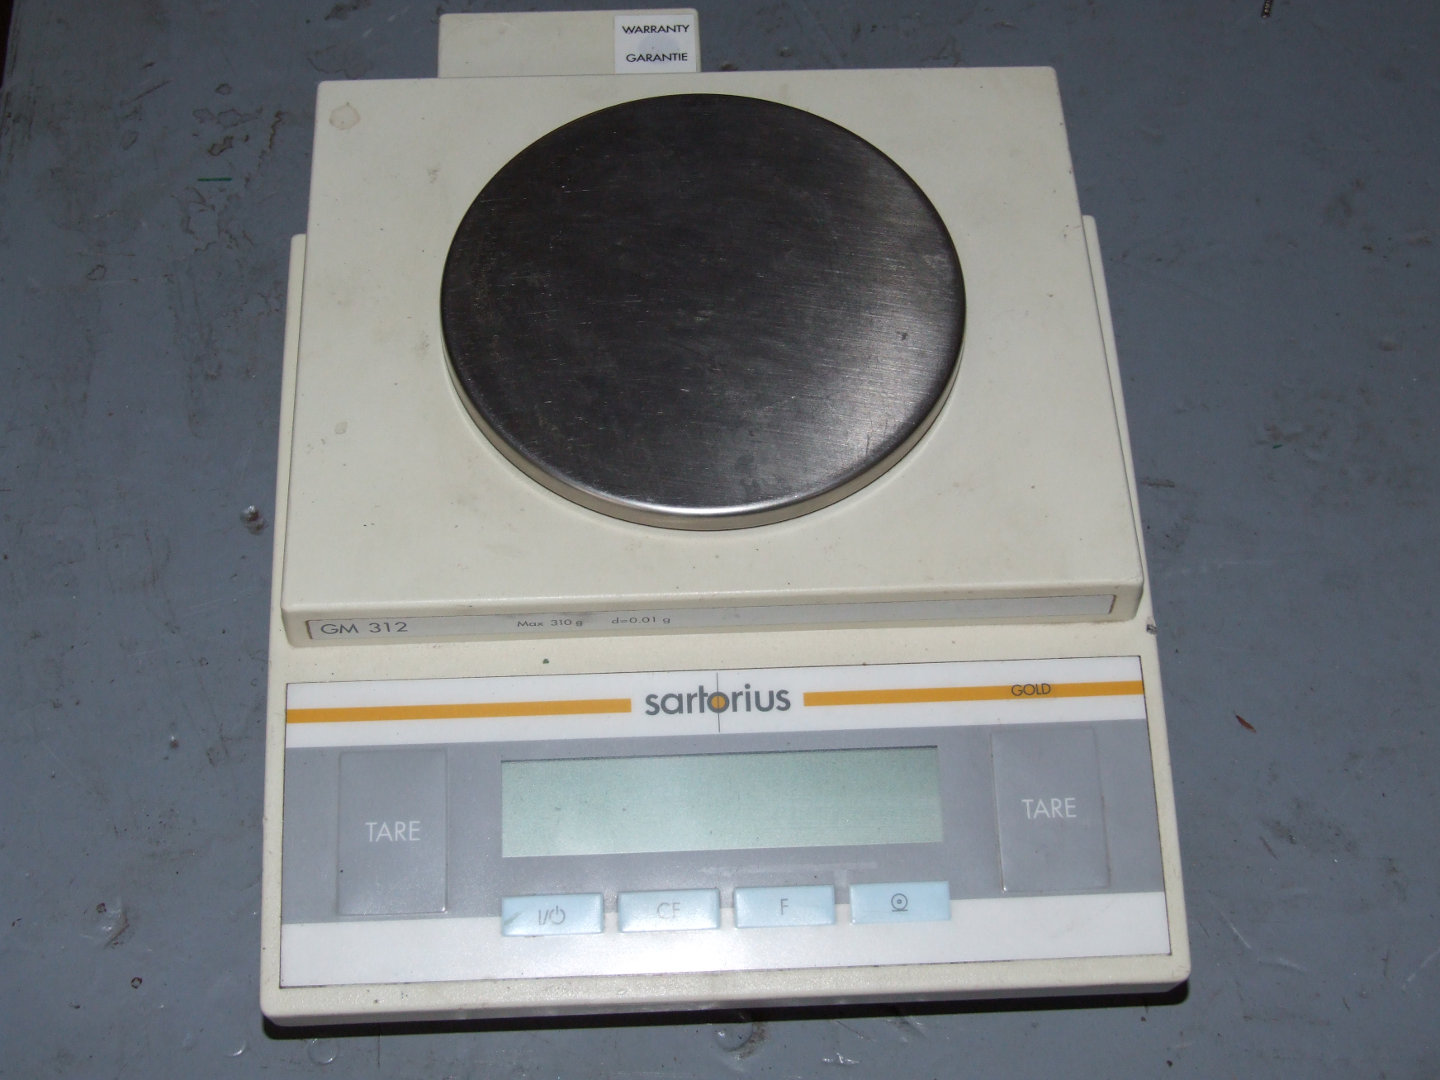 Scales with software